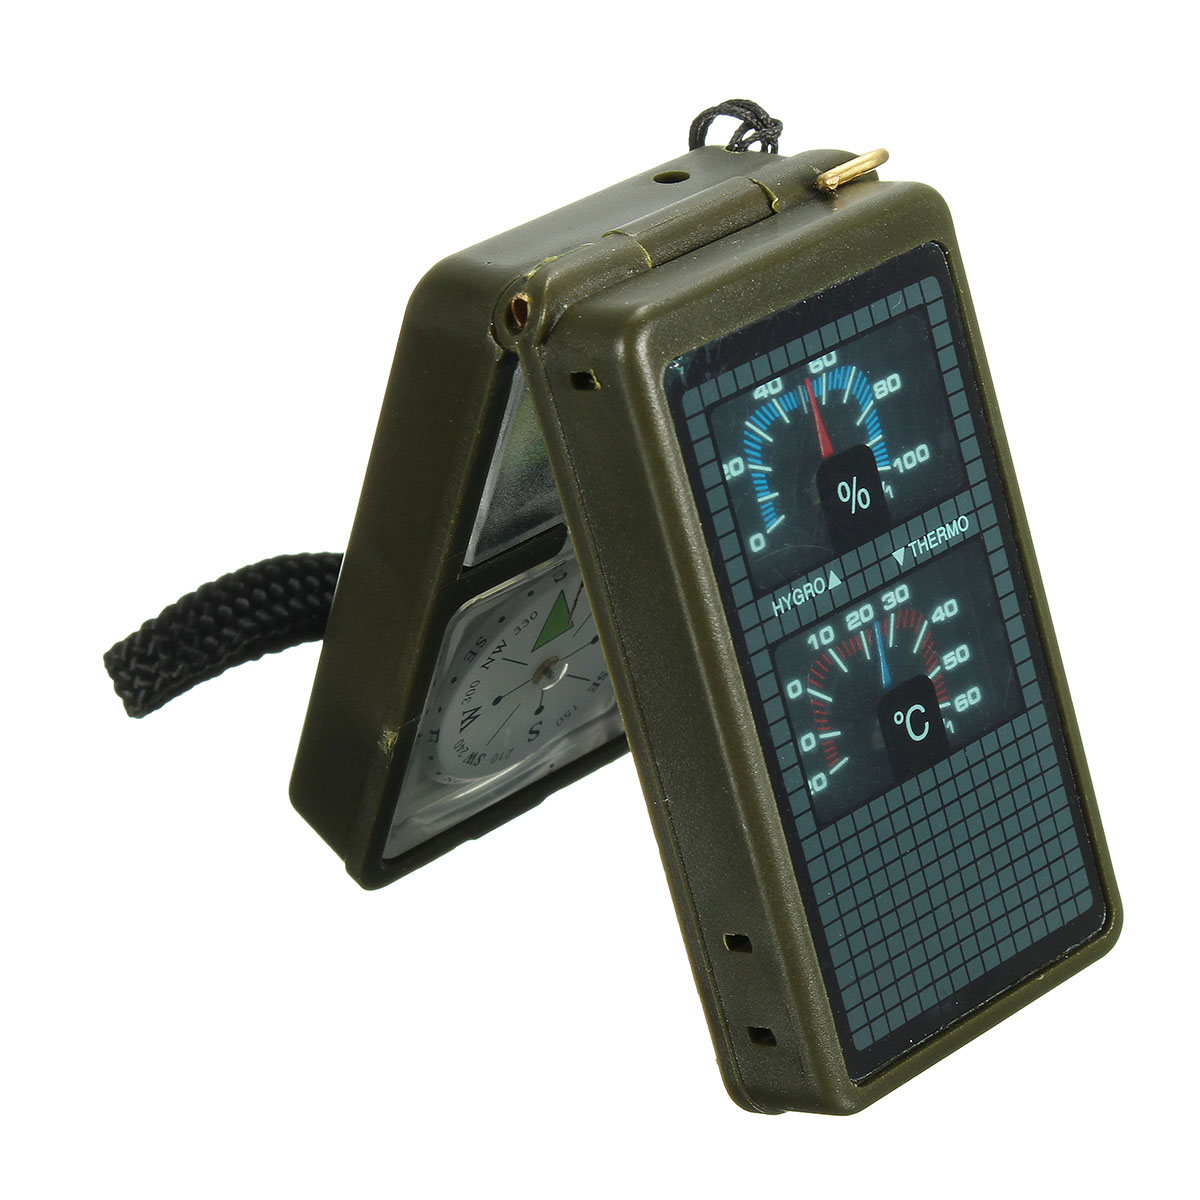 IPRee® 10 in 1 Multifunction Outdoor Survival Compass Tool Camping Emergency Kit